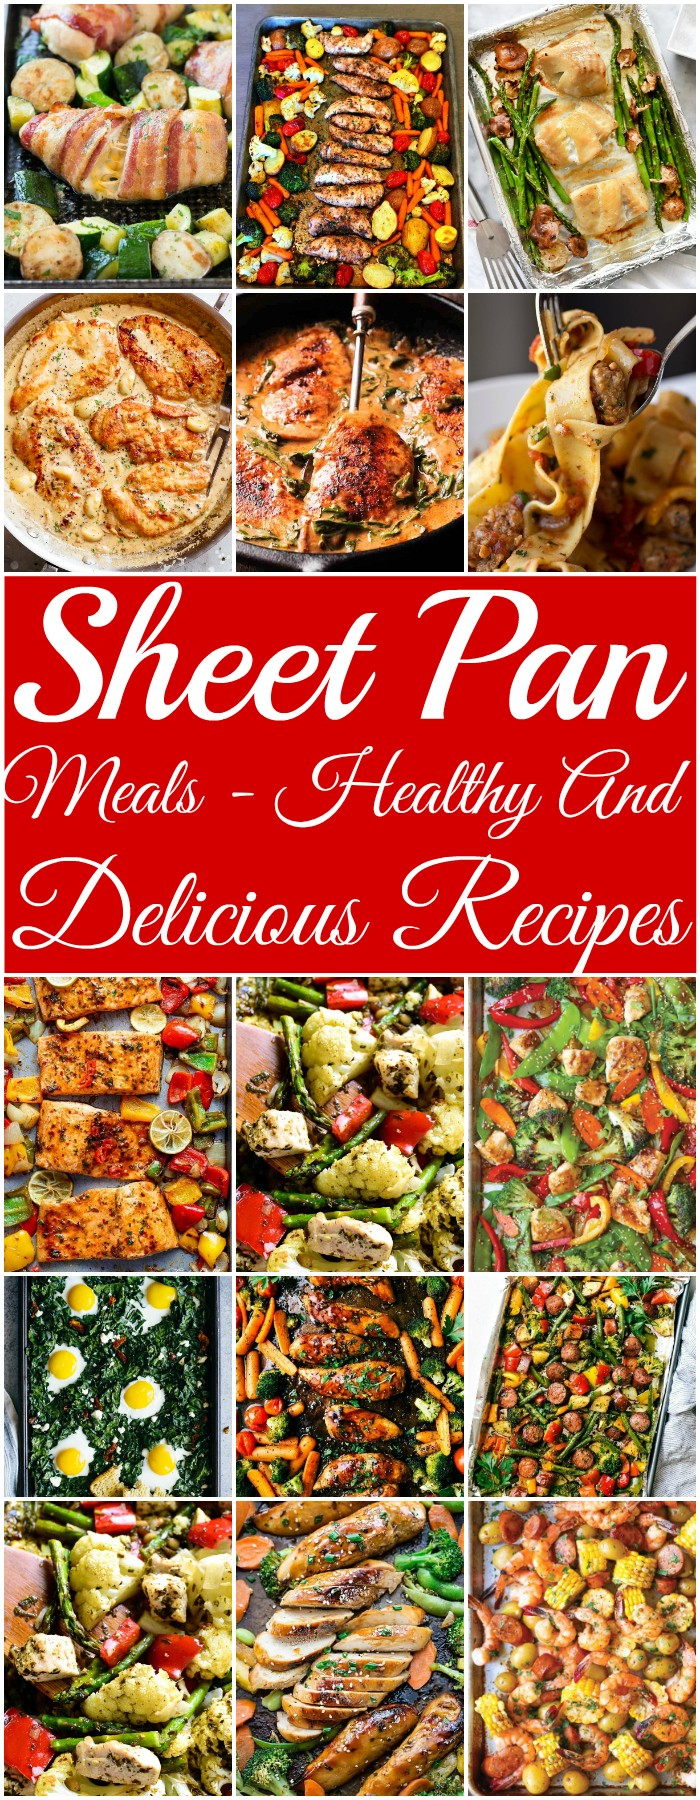 Sheet Pan Meals - Healthy And Delicious Recipes